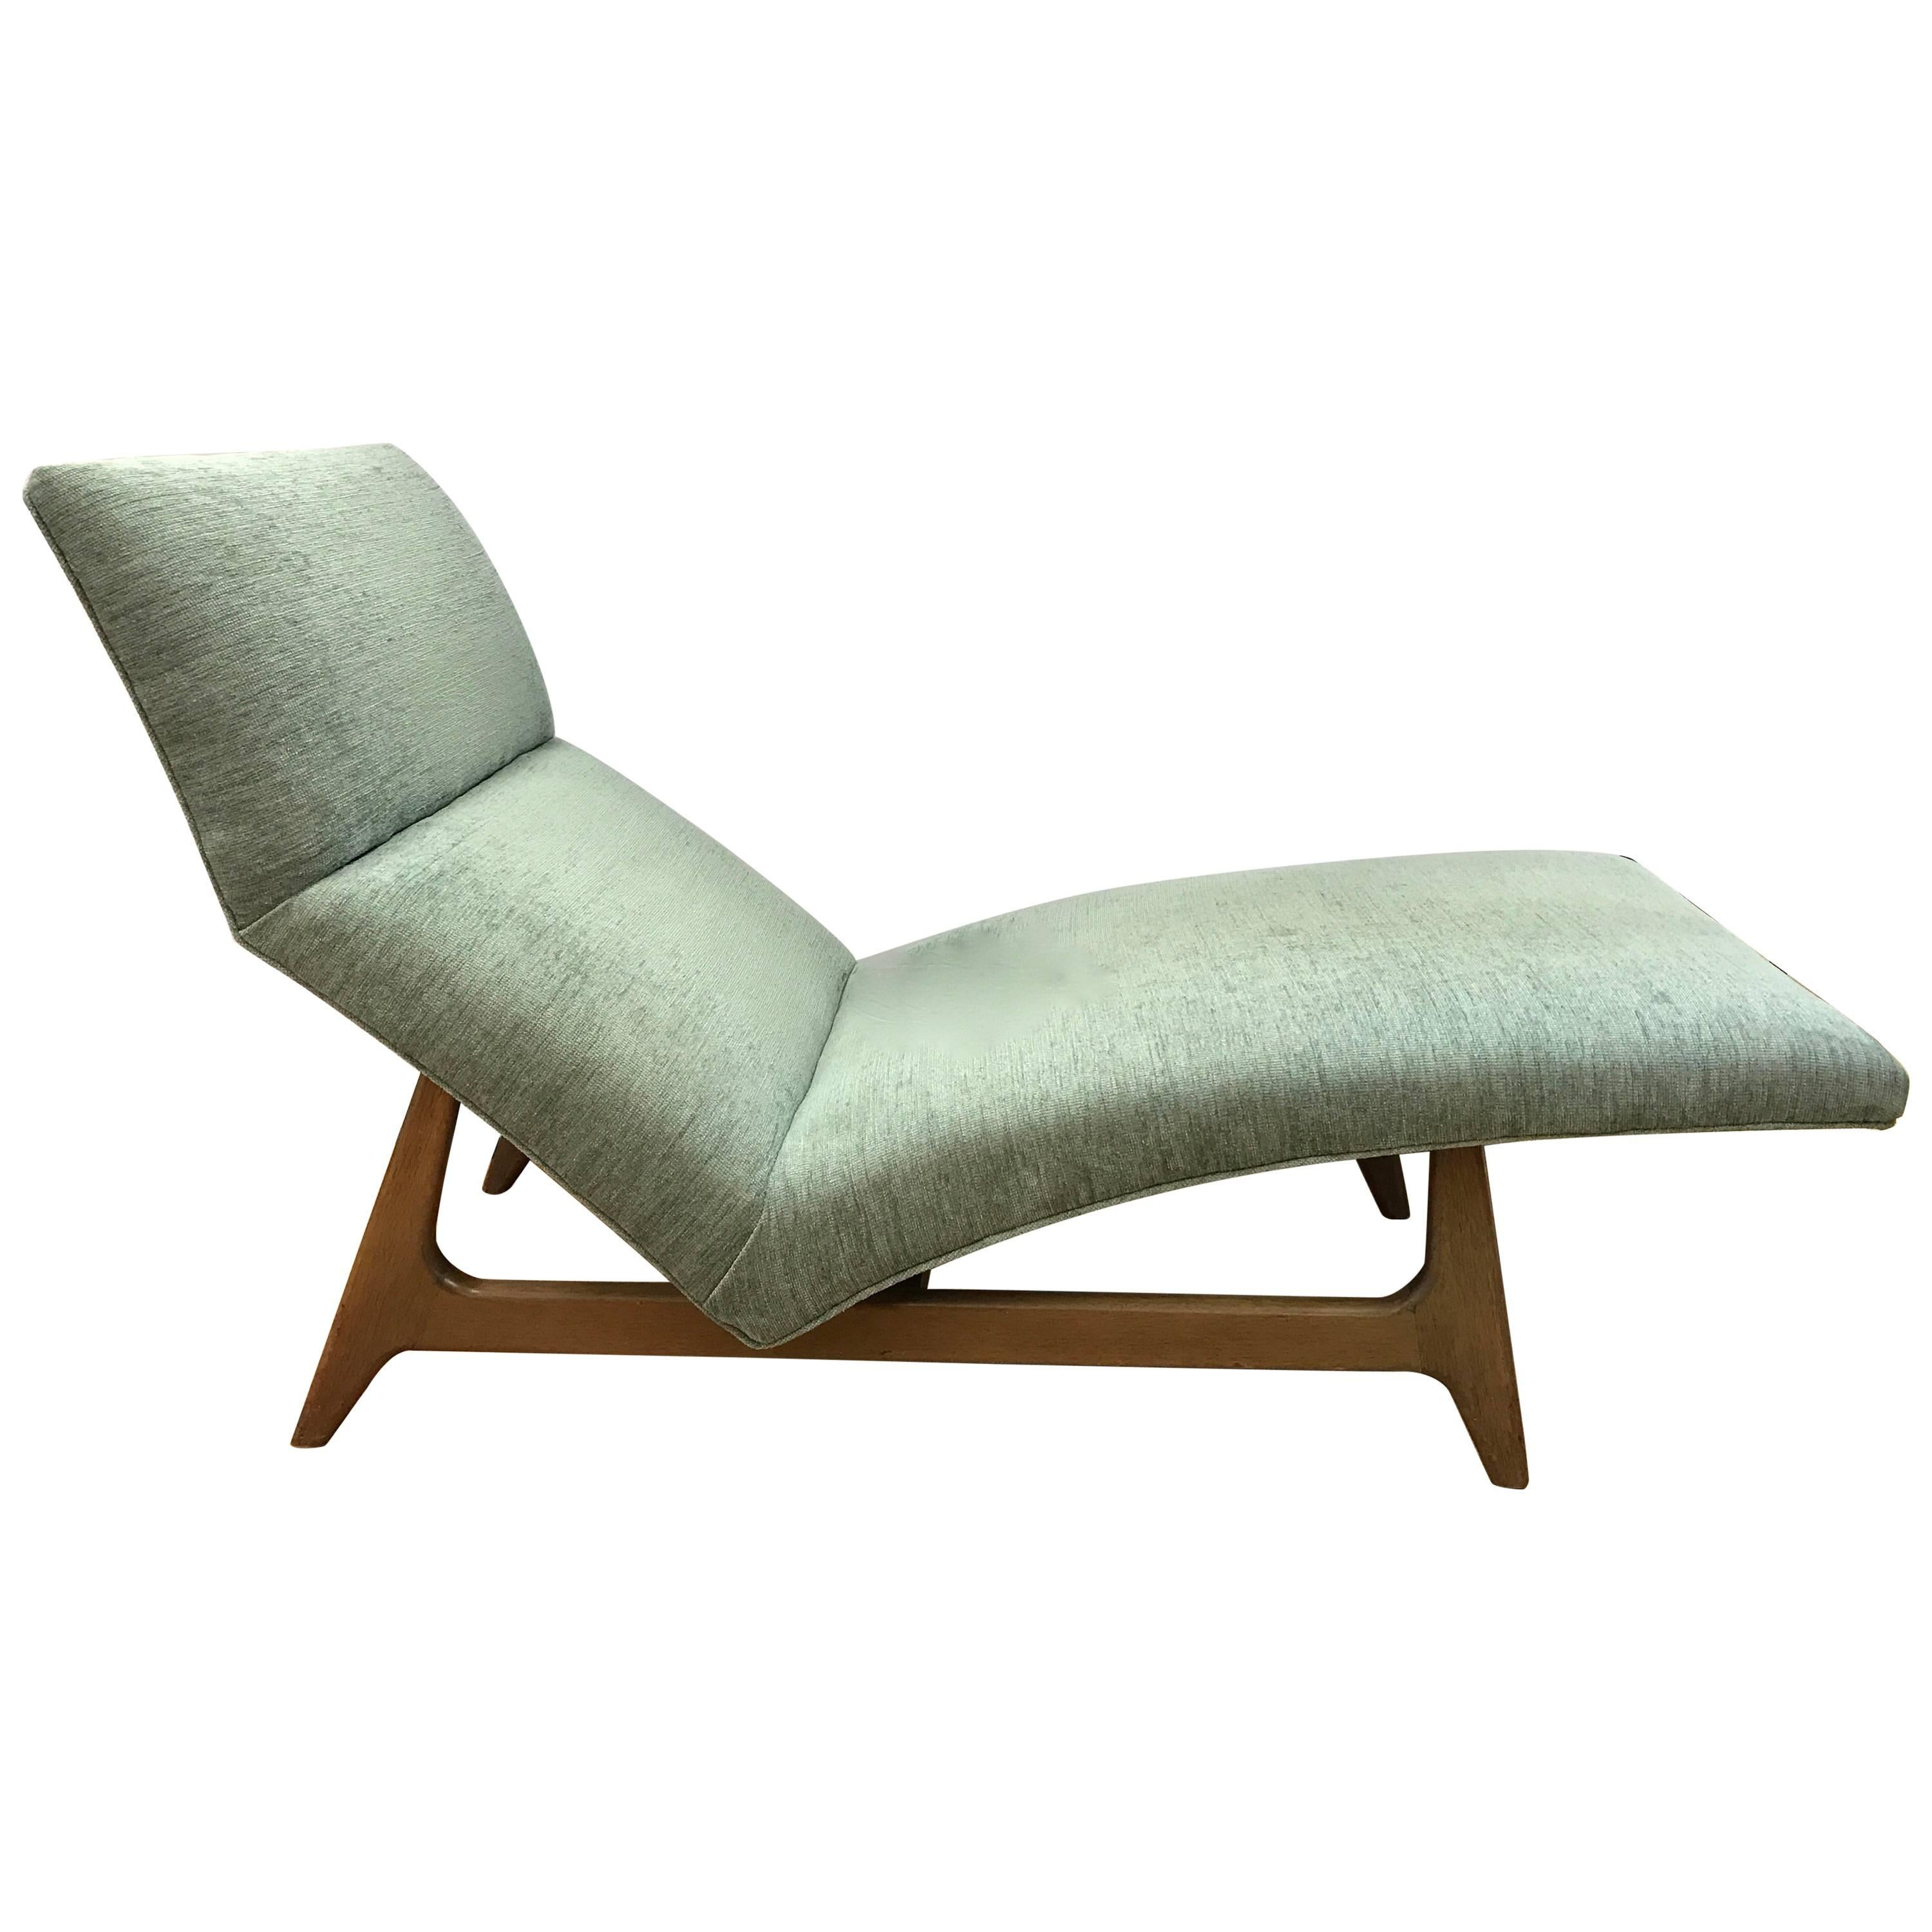 Midcentury Curved Chaise Lounge Chair Attributed to Adrian Pearsall  sc 1 st  1stDibs : mid century chaise lounge - Sectionals, Sofas & Couches